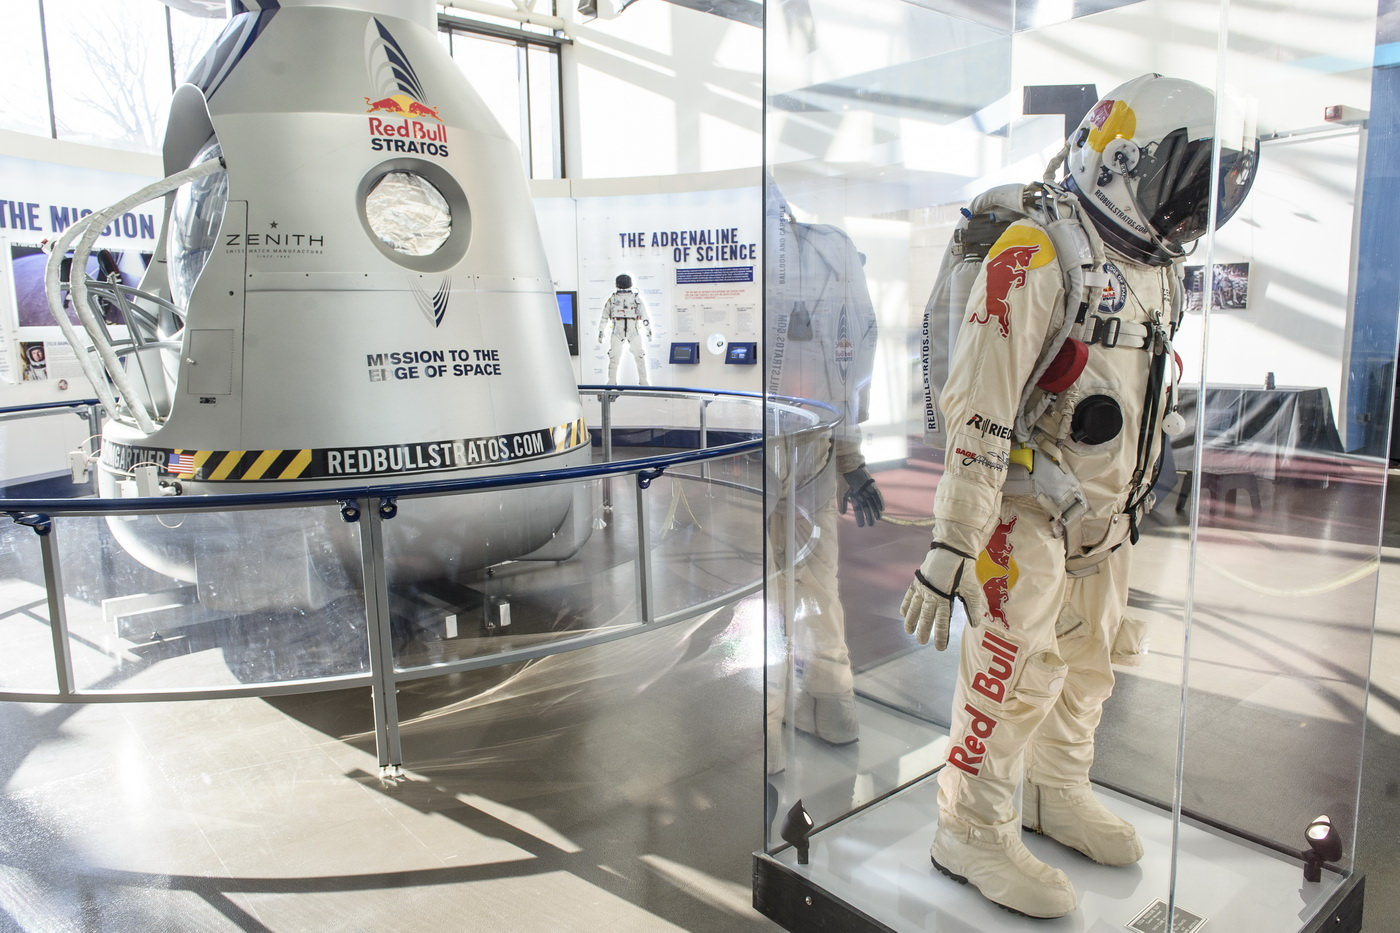 Cápsula original Red Bull Stratos